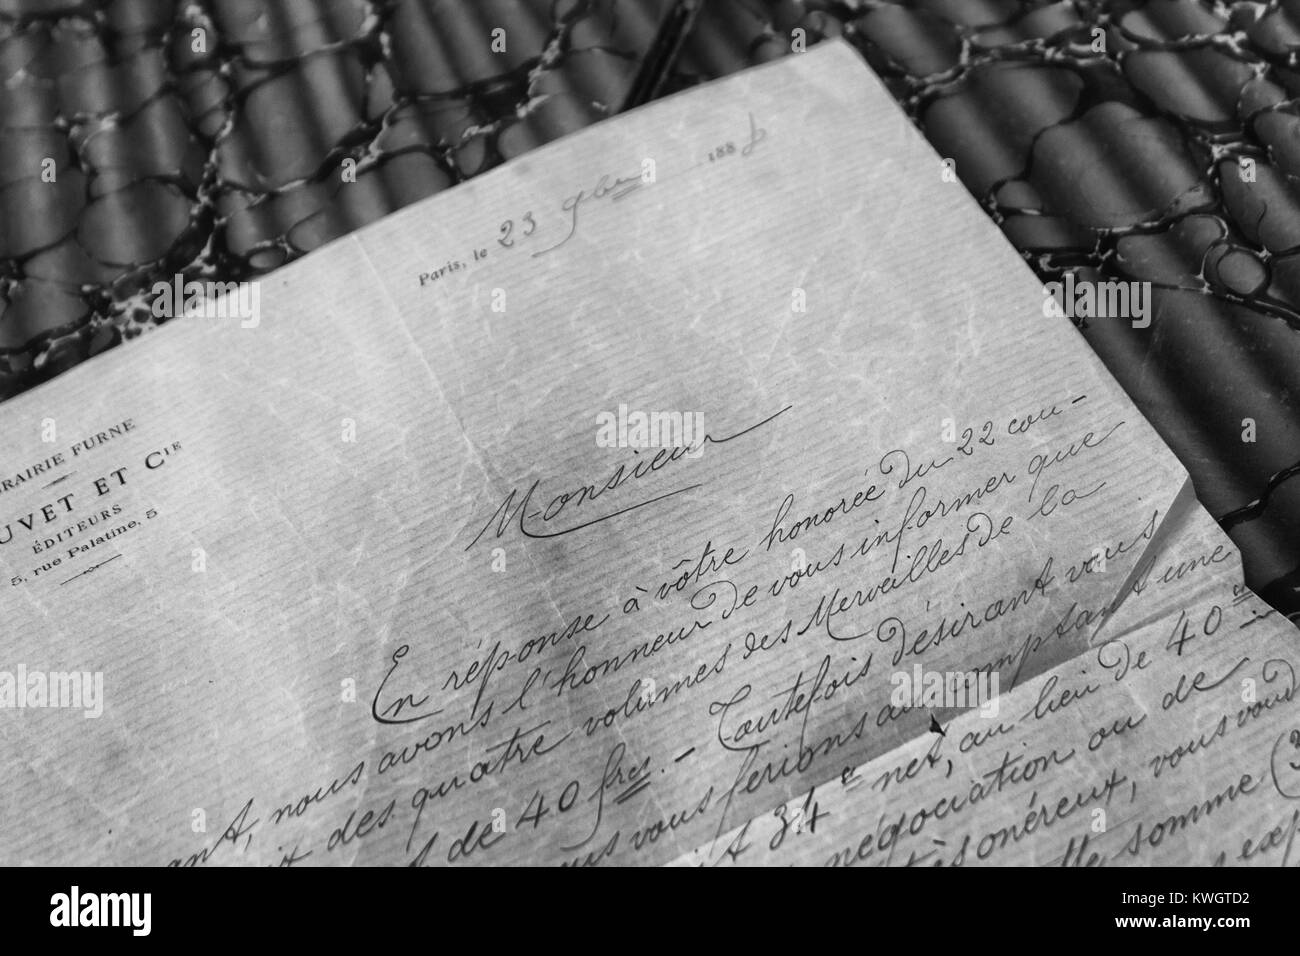 Fragment of a late 19th century letter written in French. - Stock Image